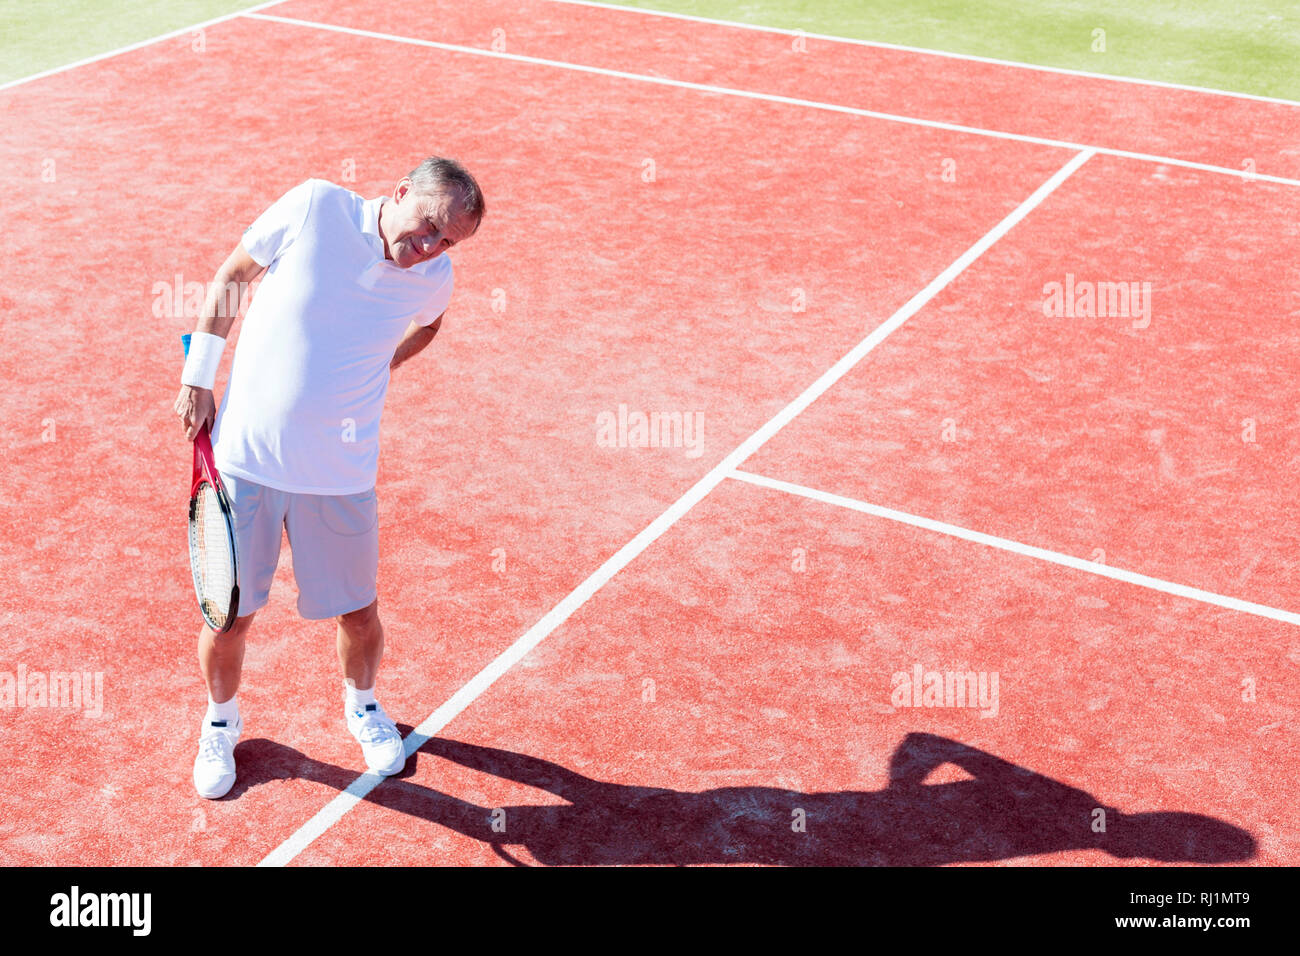 Full length of senior man standing with backache on red court during match on sunny day - Stock Image